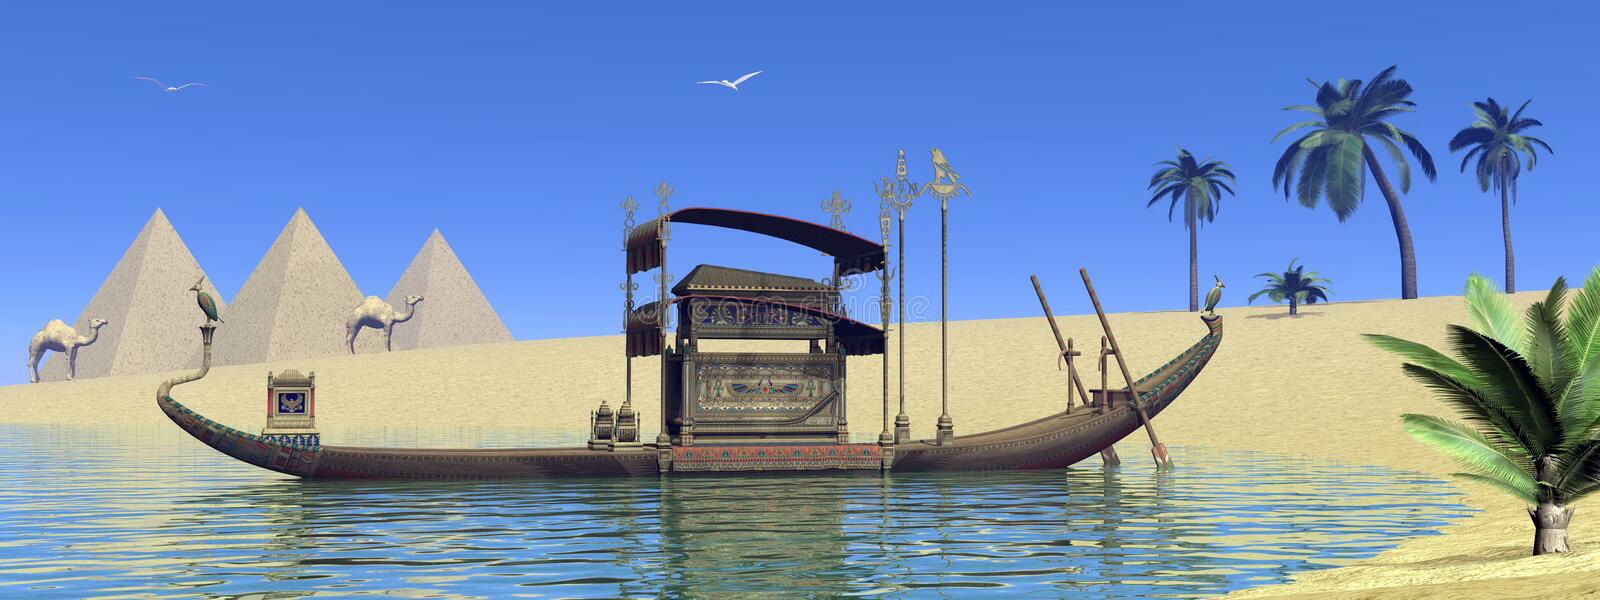 Tomb on sacred barge in Egypt - 3D render. Tomb on sacred barge floating on the water next to sand and pyramids in Egypt - 3D render royalty free illustration